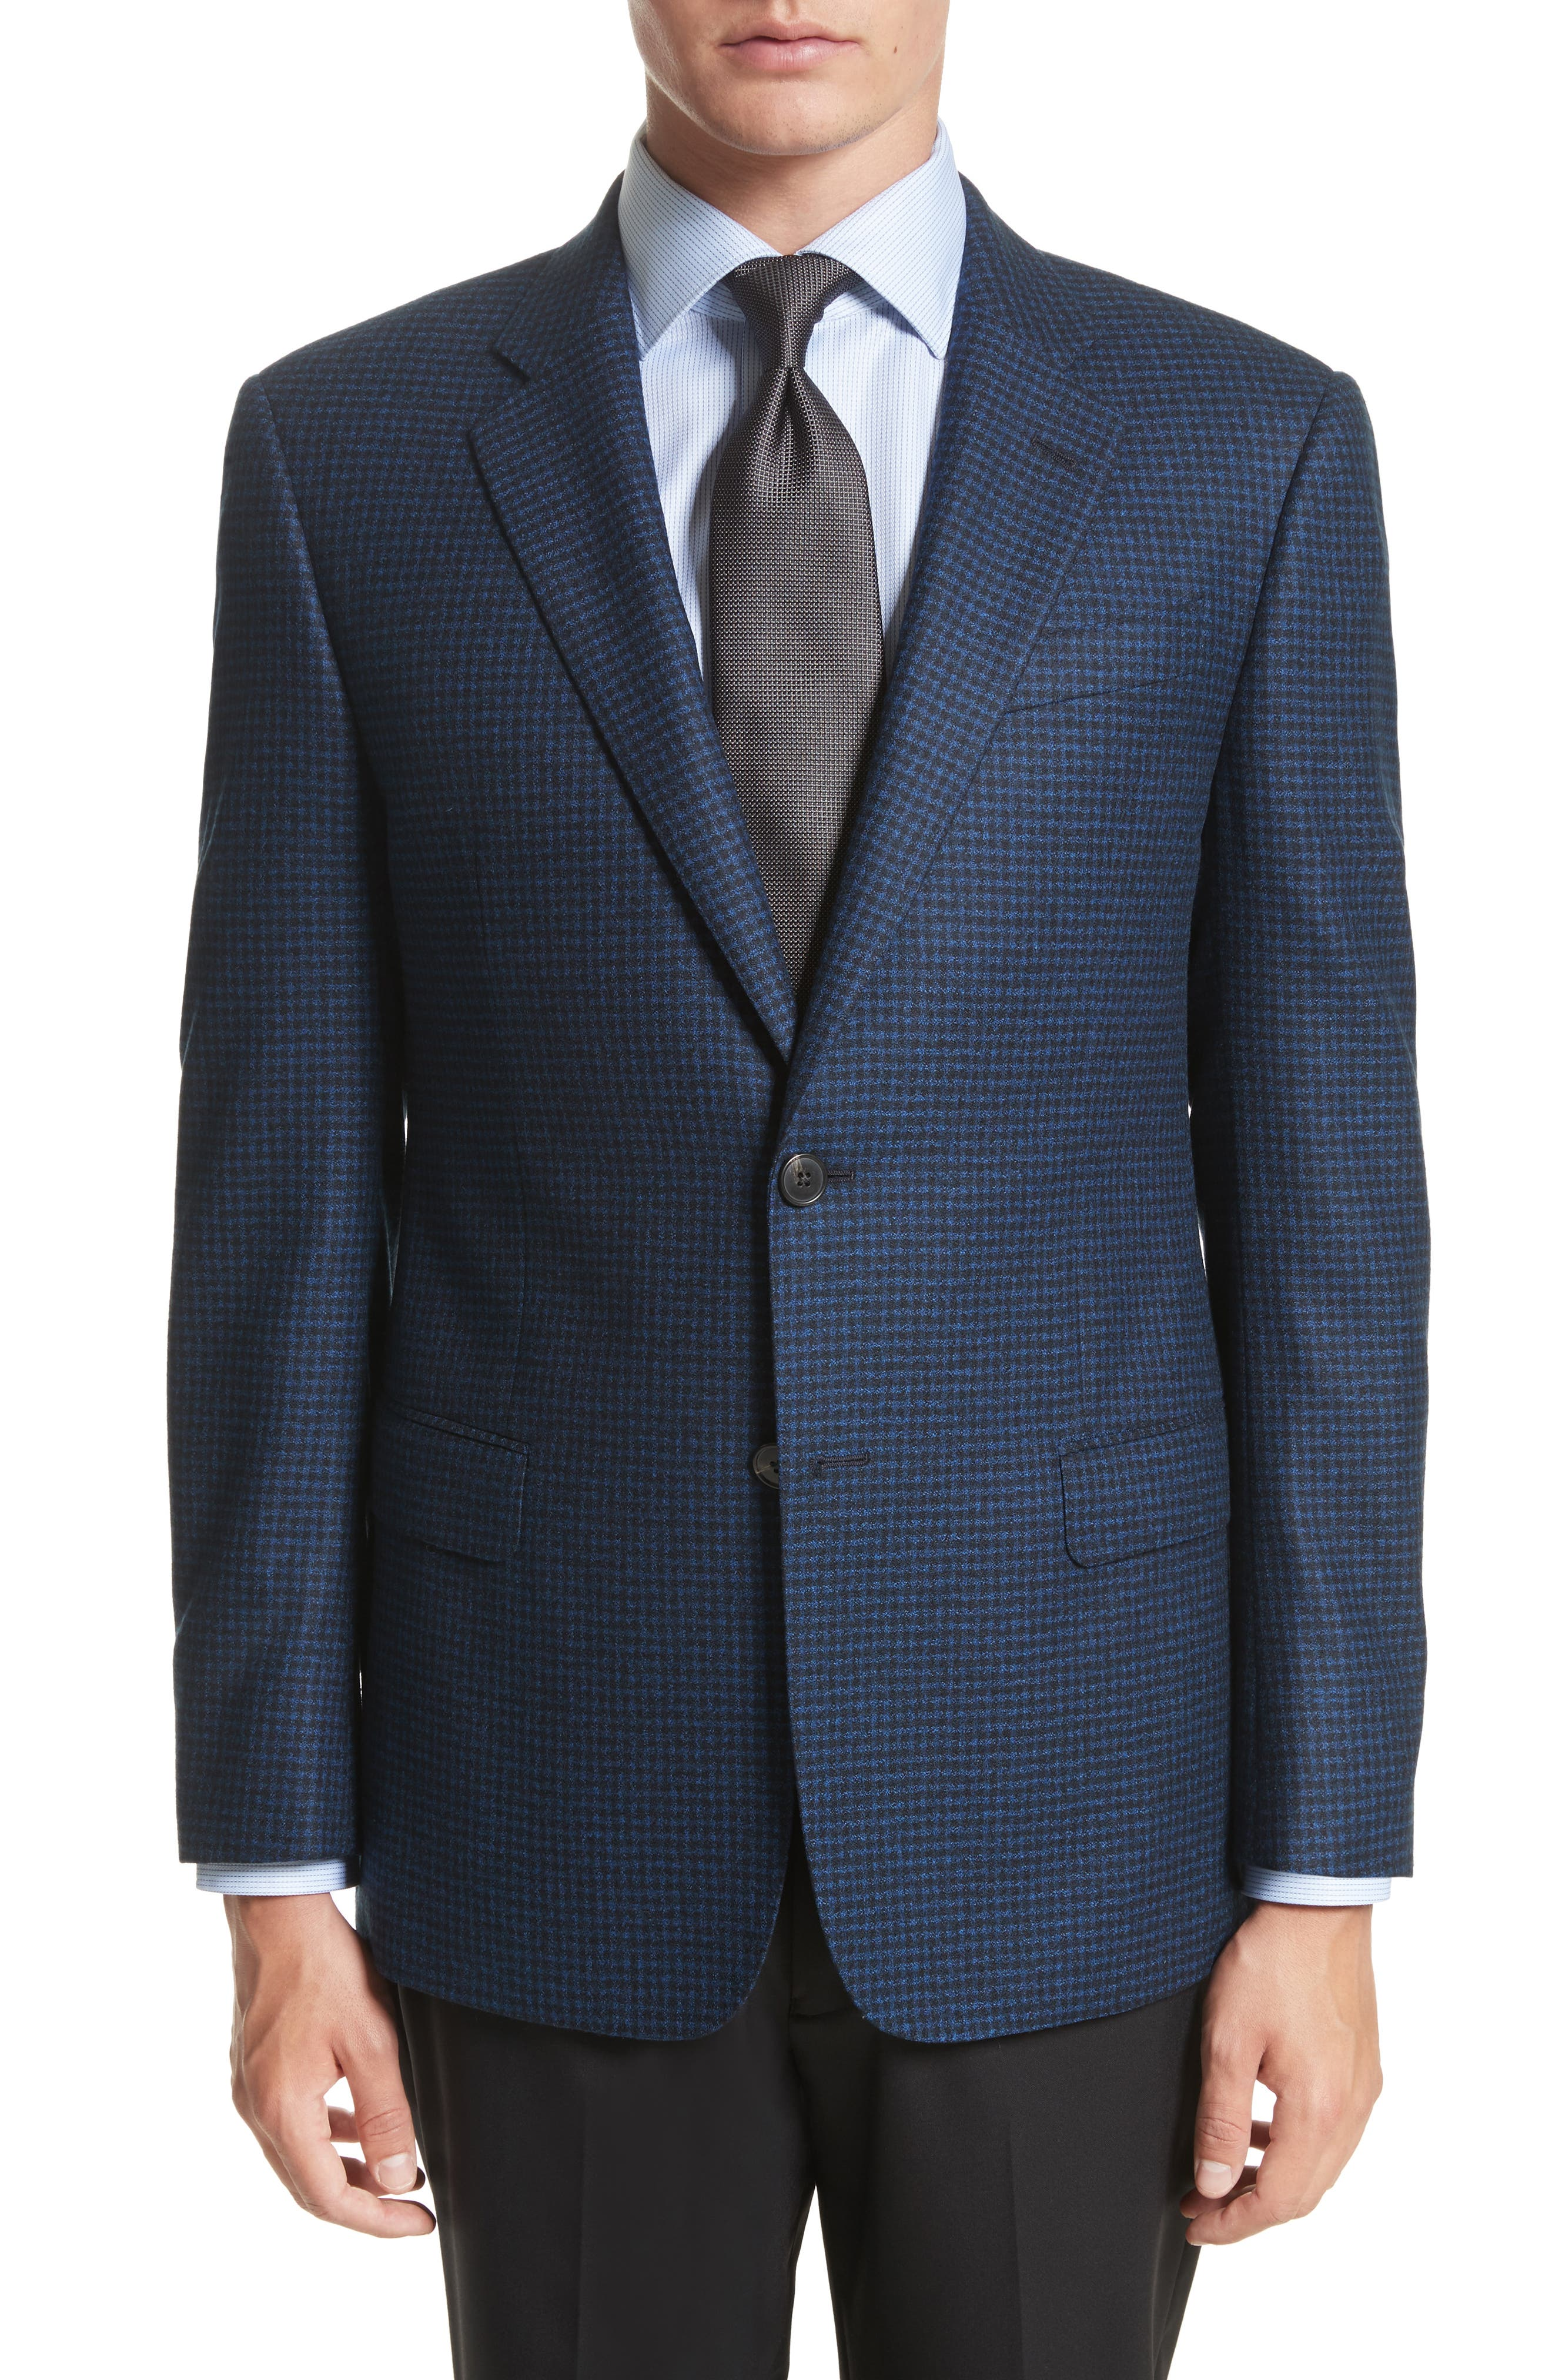 Alternate Image 1 Selected - Armani Collezioni G-Line Trim Fit Check Wool Sport Coat